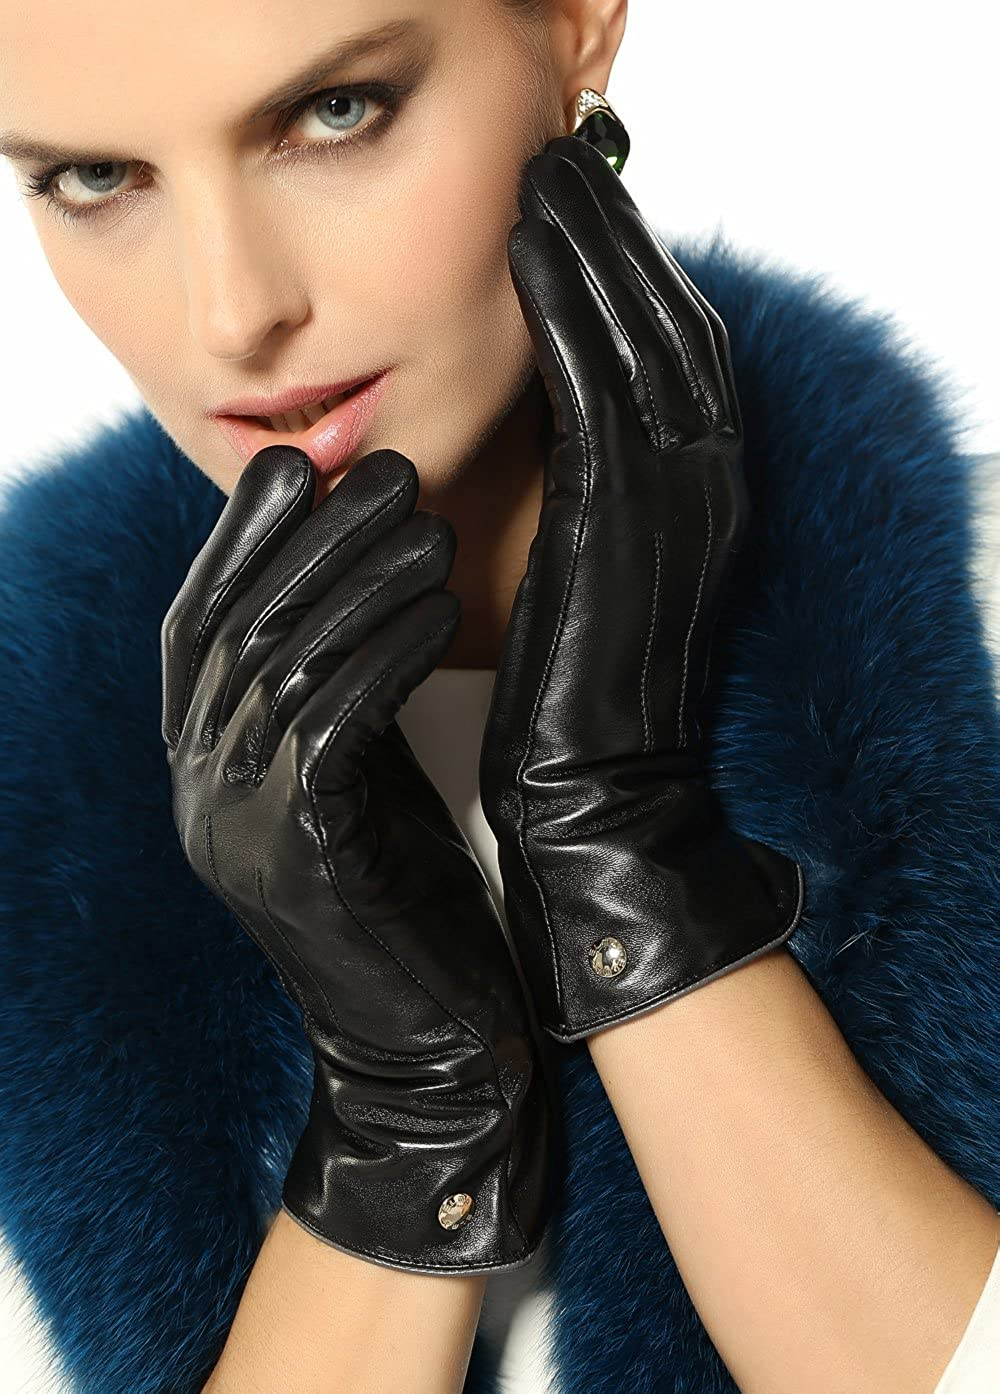 e580aecdb7 Elma Womens Classic Touchscreen Texting Winter Warm Driving Hairsheep  Leather Gloves 100% Pure Cashmere Lined at Amazon Women s Clothing store